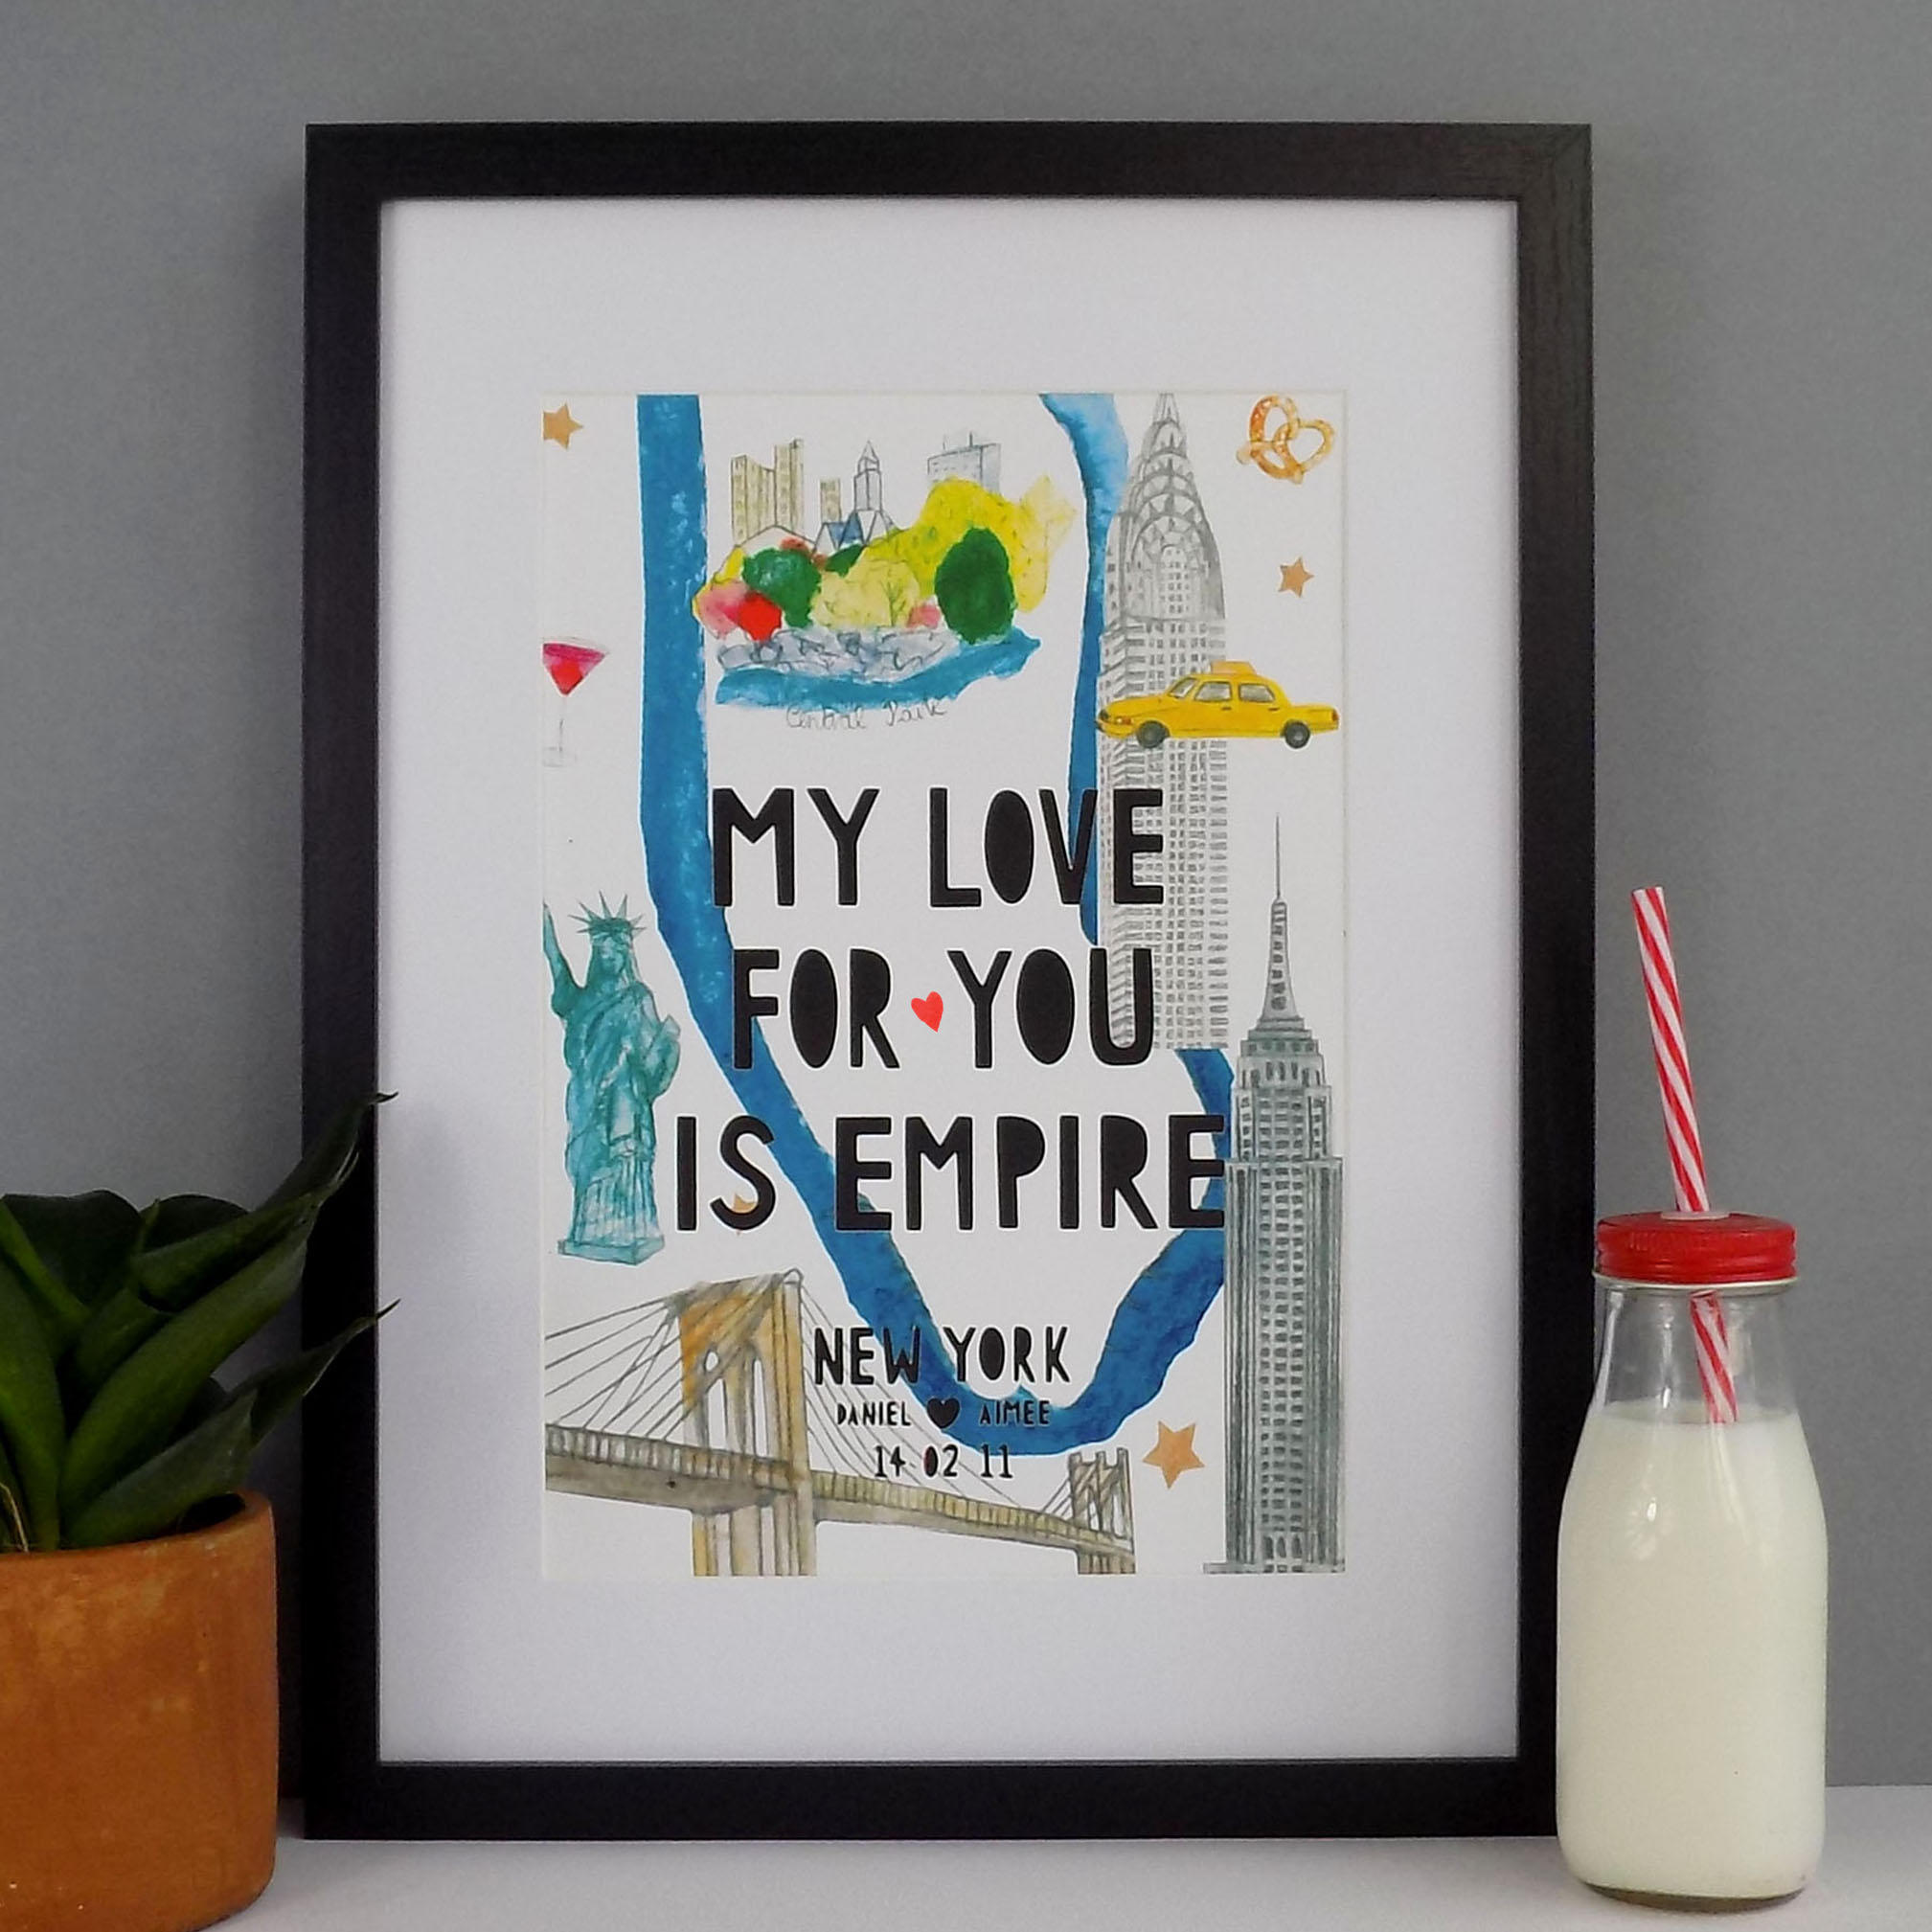 A new York illustrated map with bold black typography that says 'My love for you is empire' and customised to the names and date of a couple.